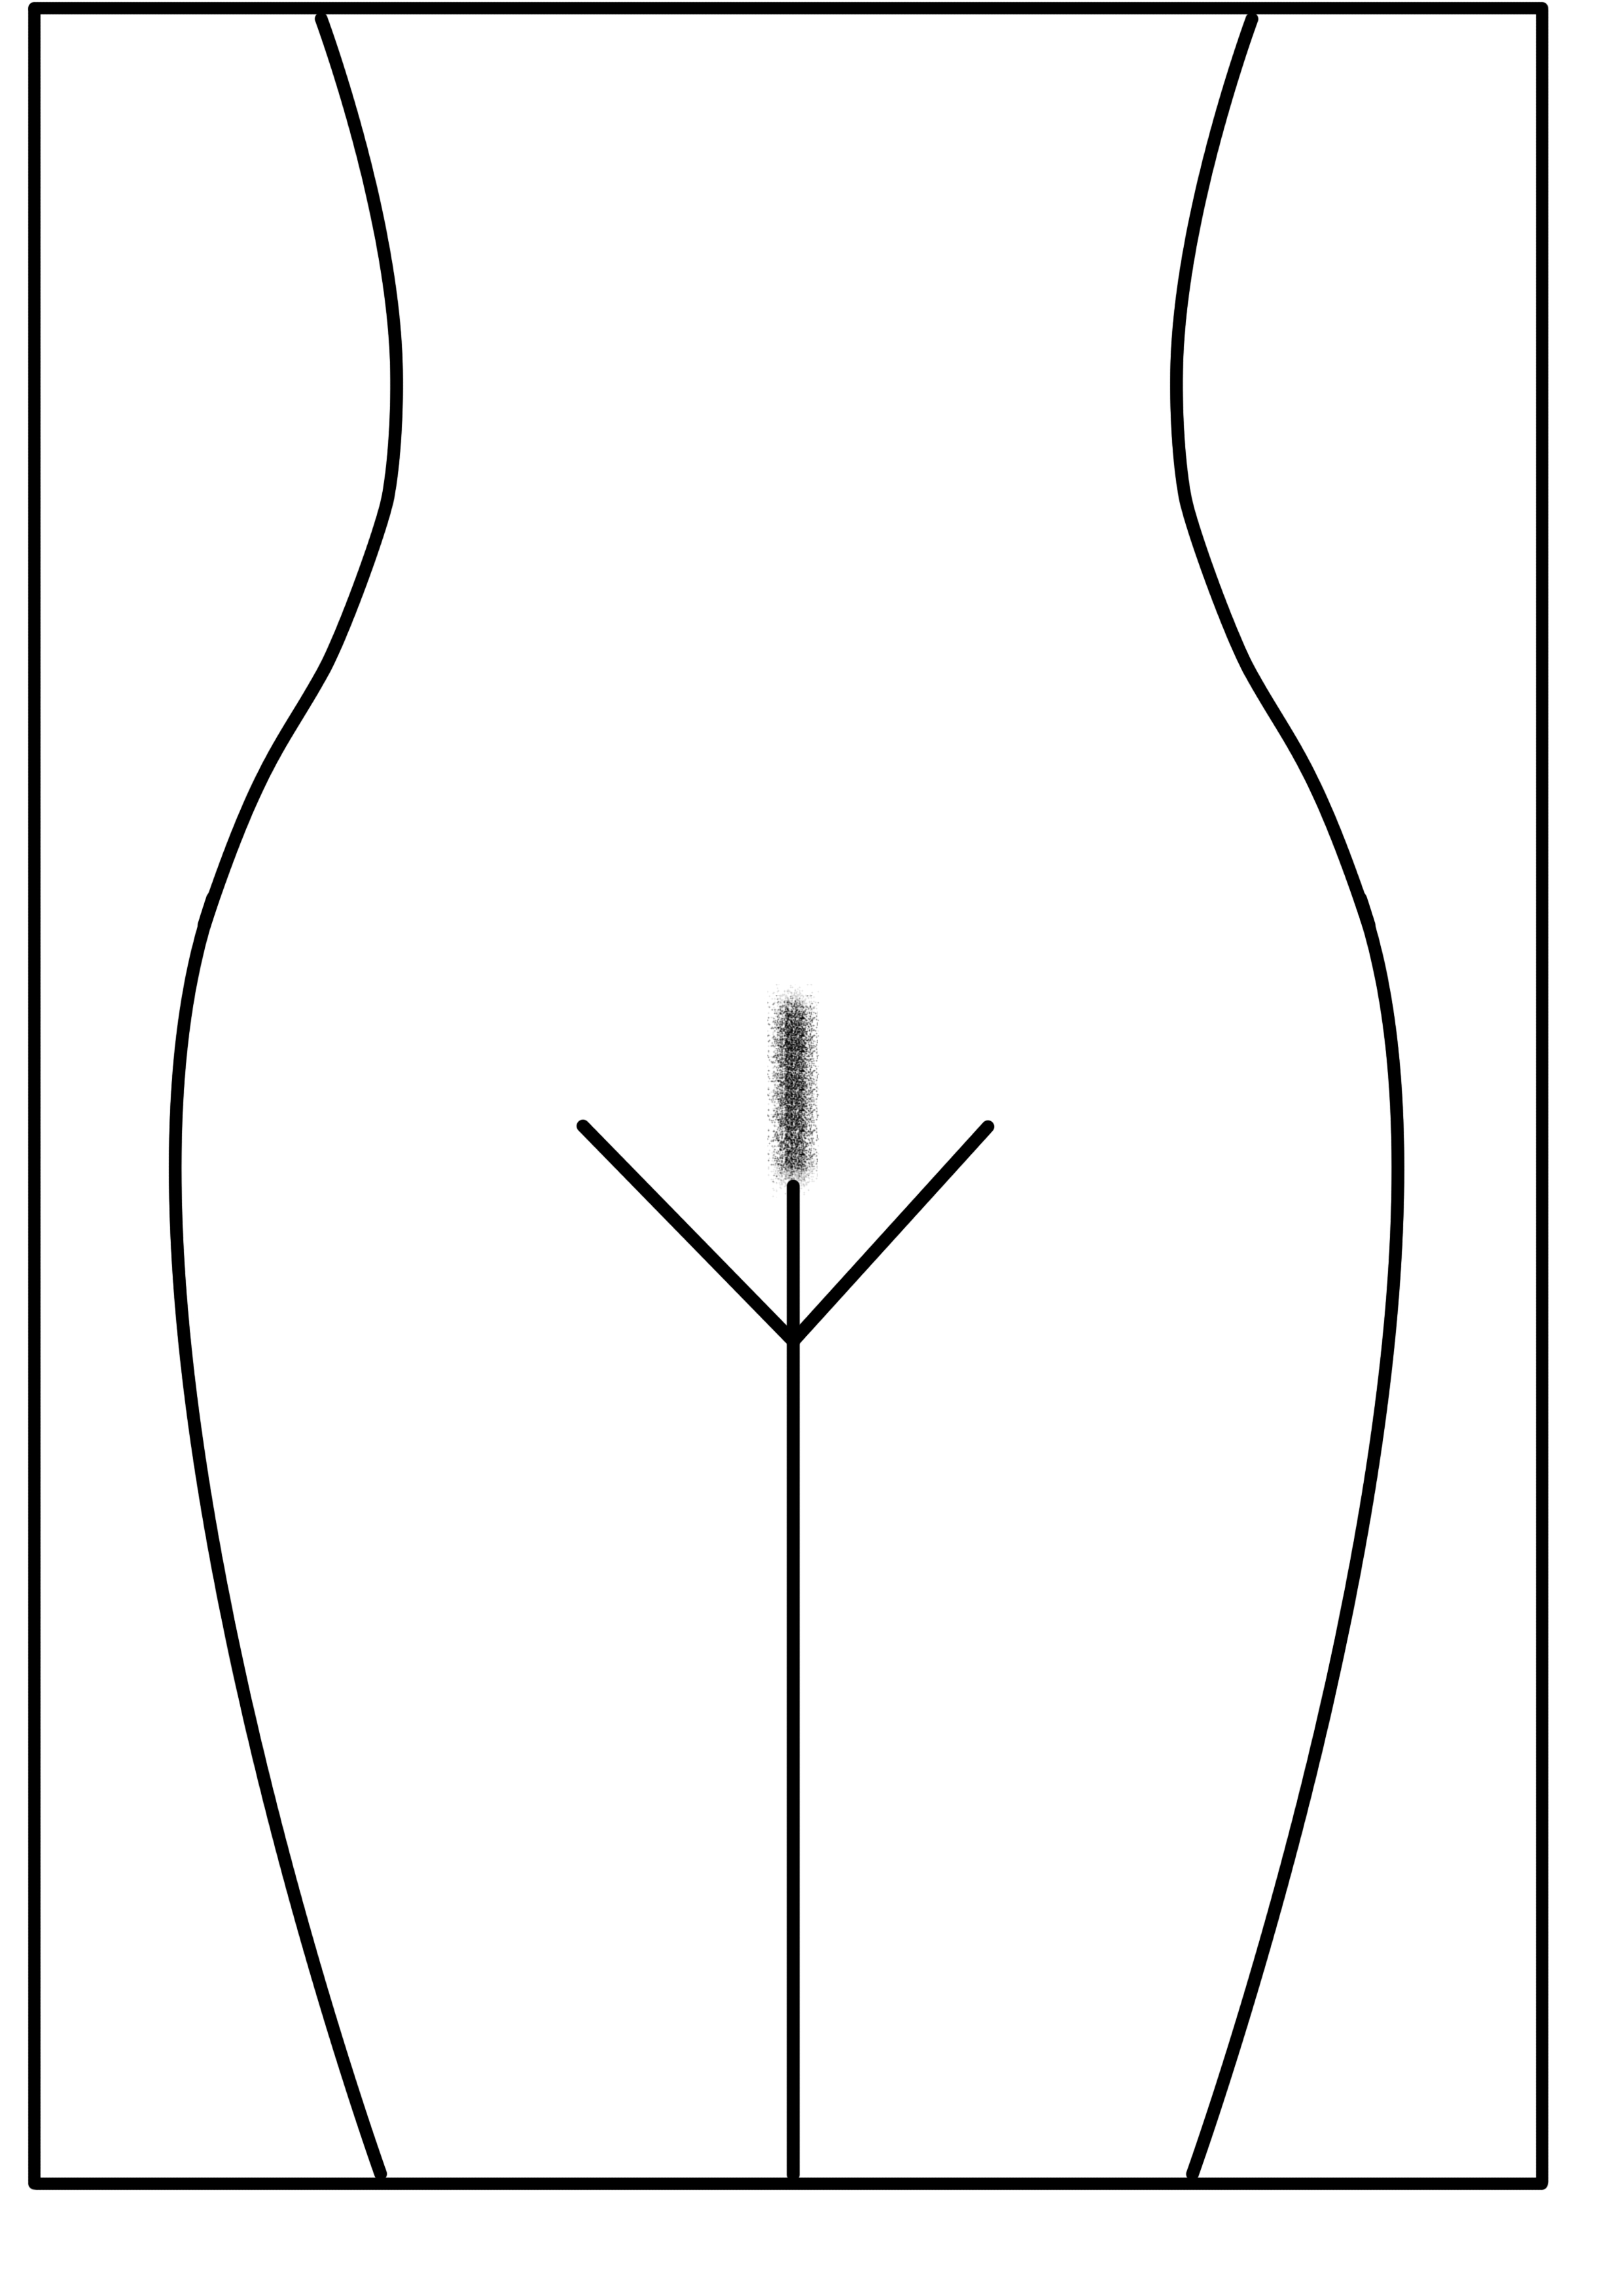 File:Pubic hair style Landing Strip.jpg - Wikipedia